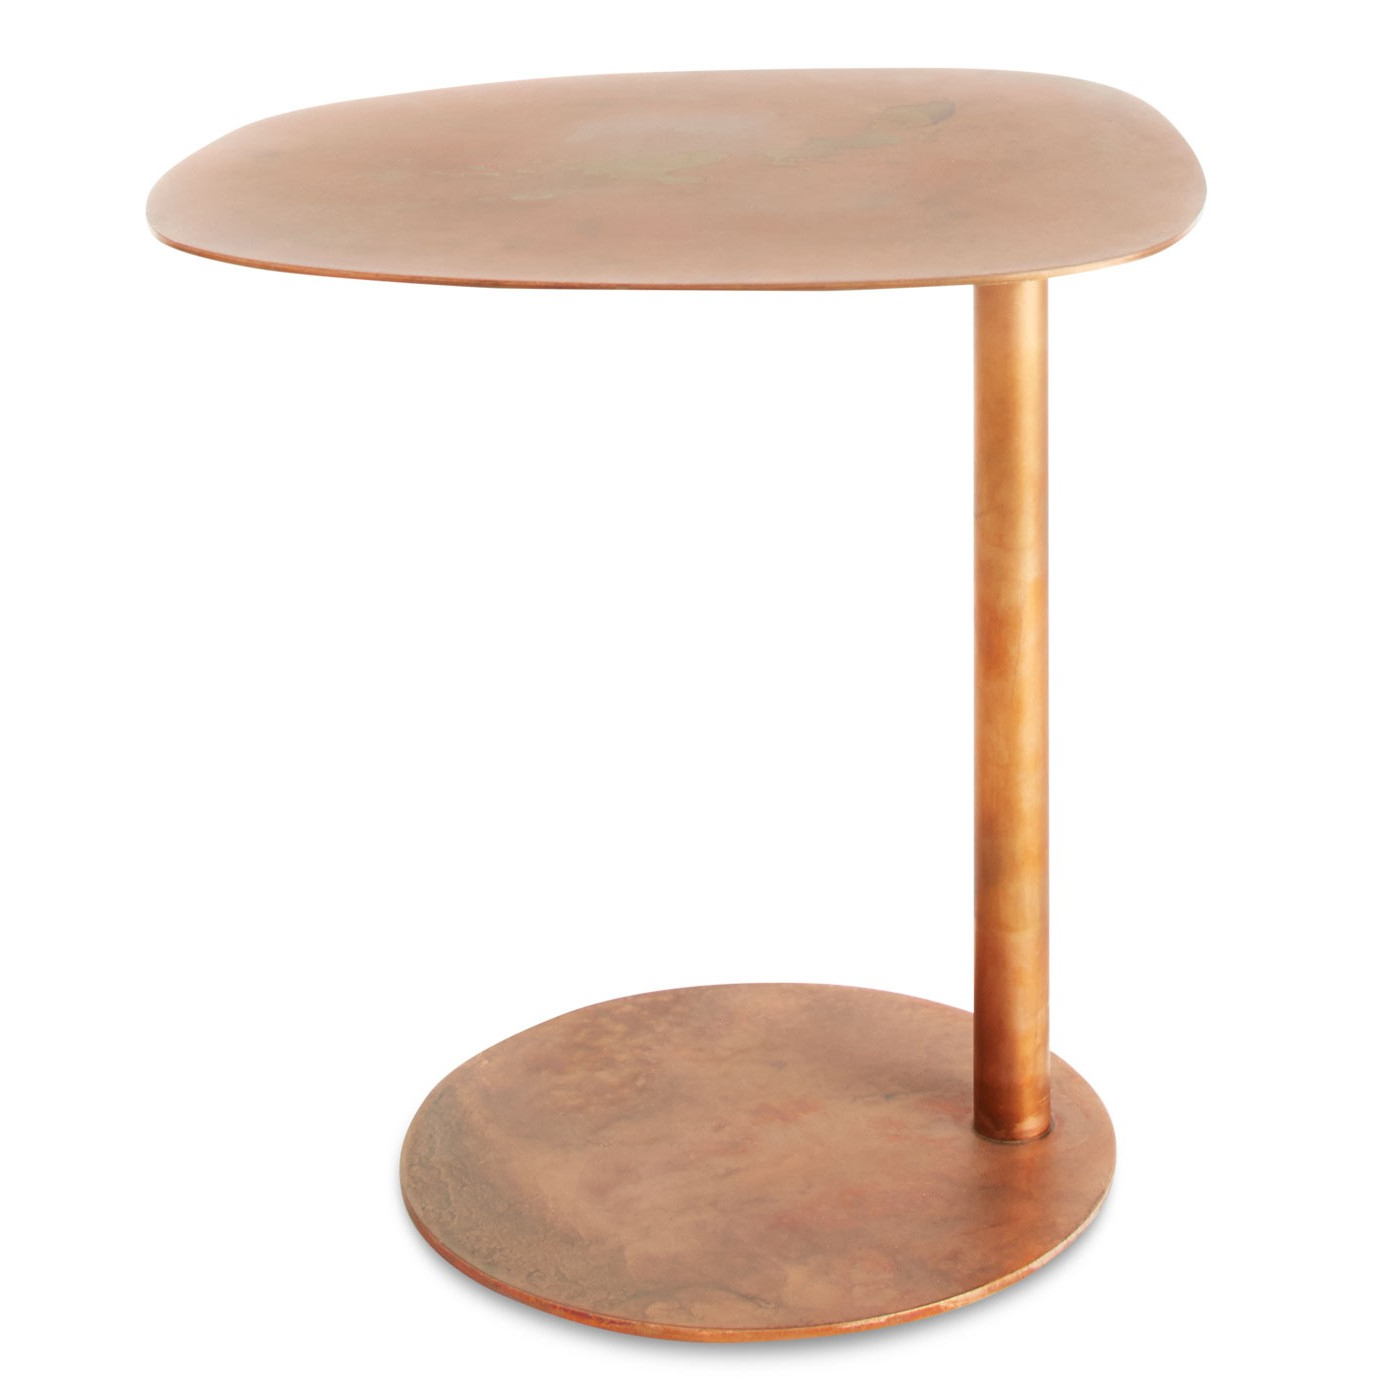 Heal's Within Most Popular Swell Round Coffee Tables (View 5 of 20)